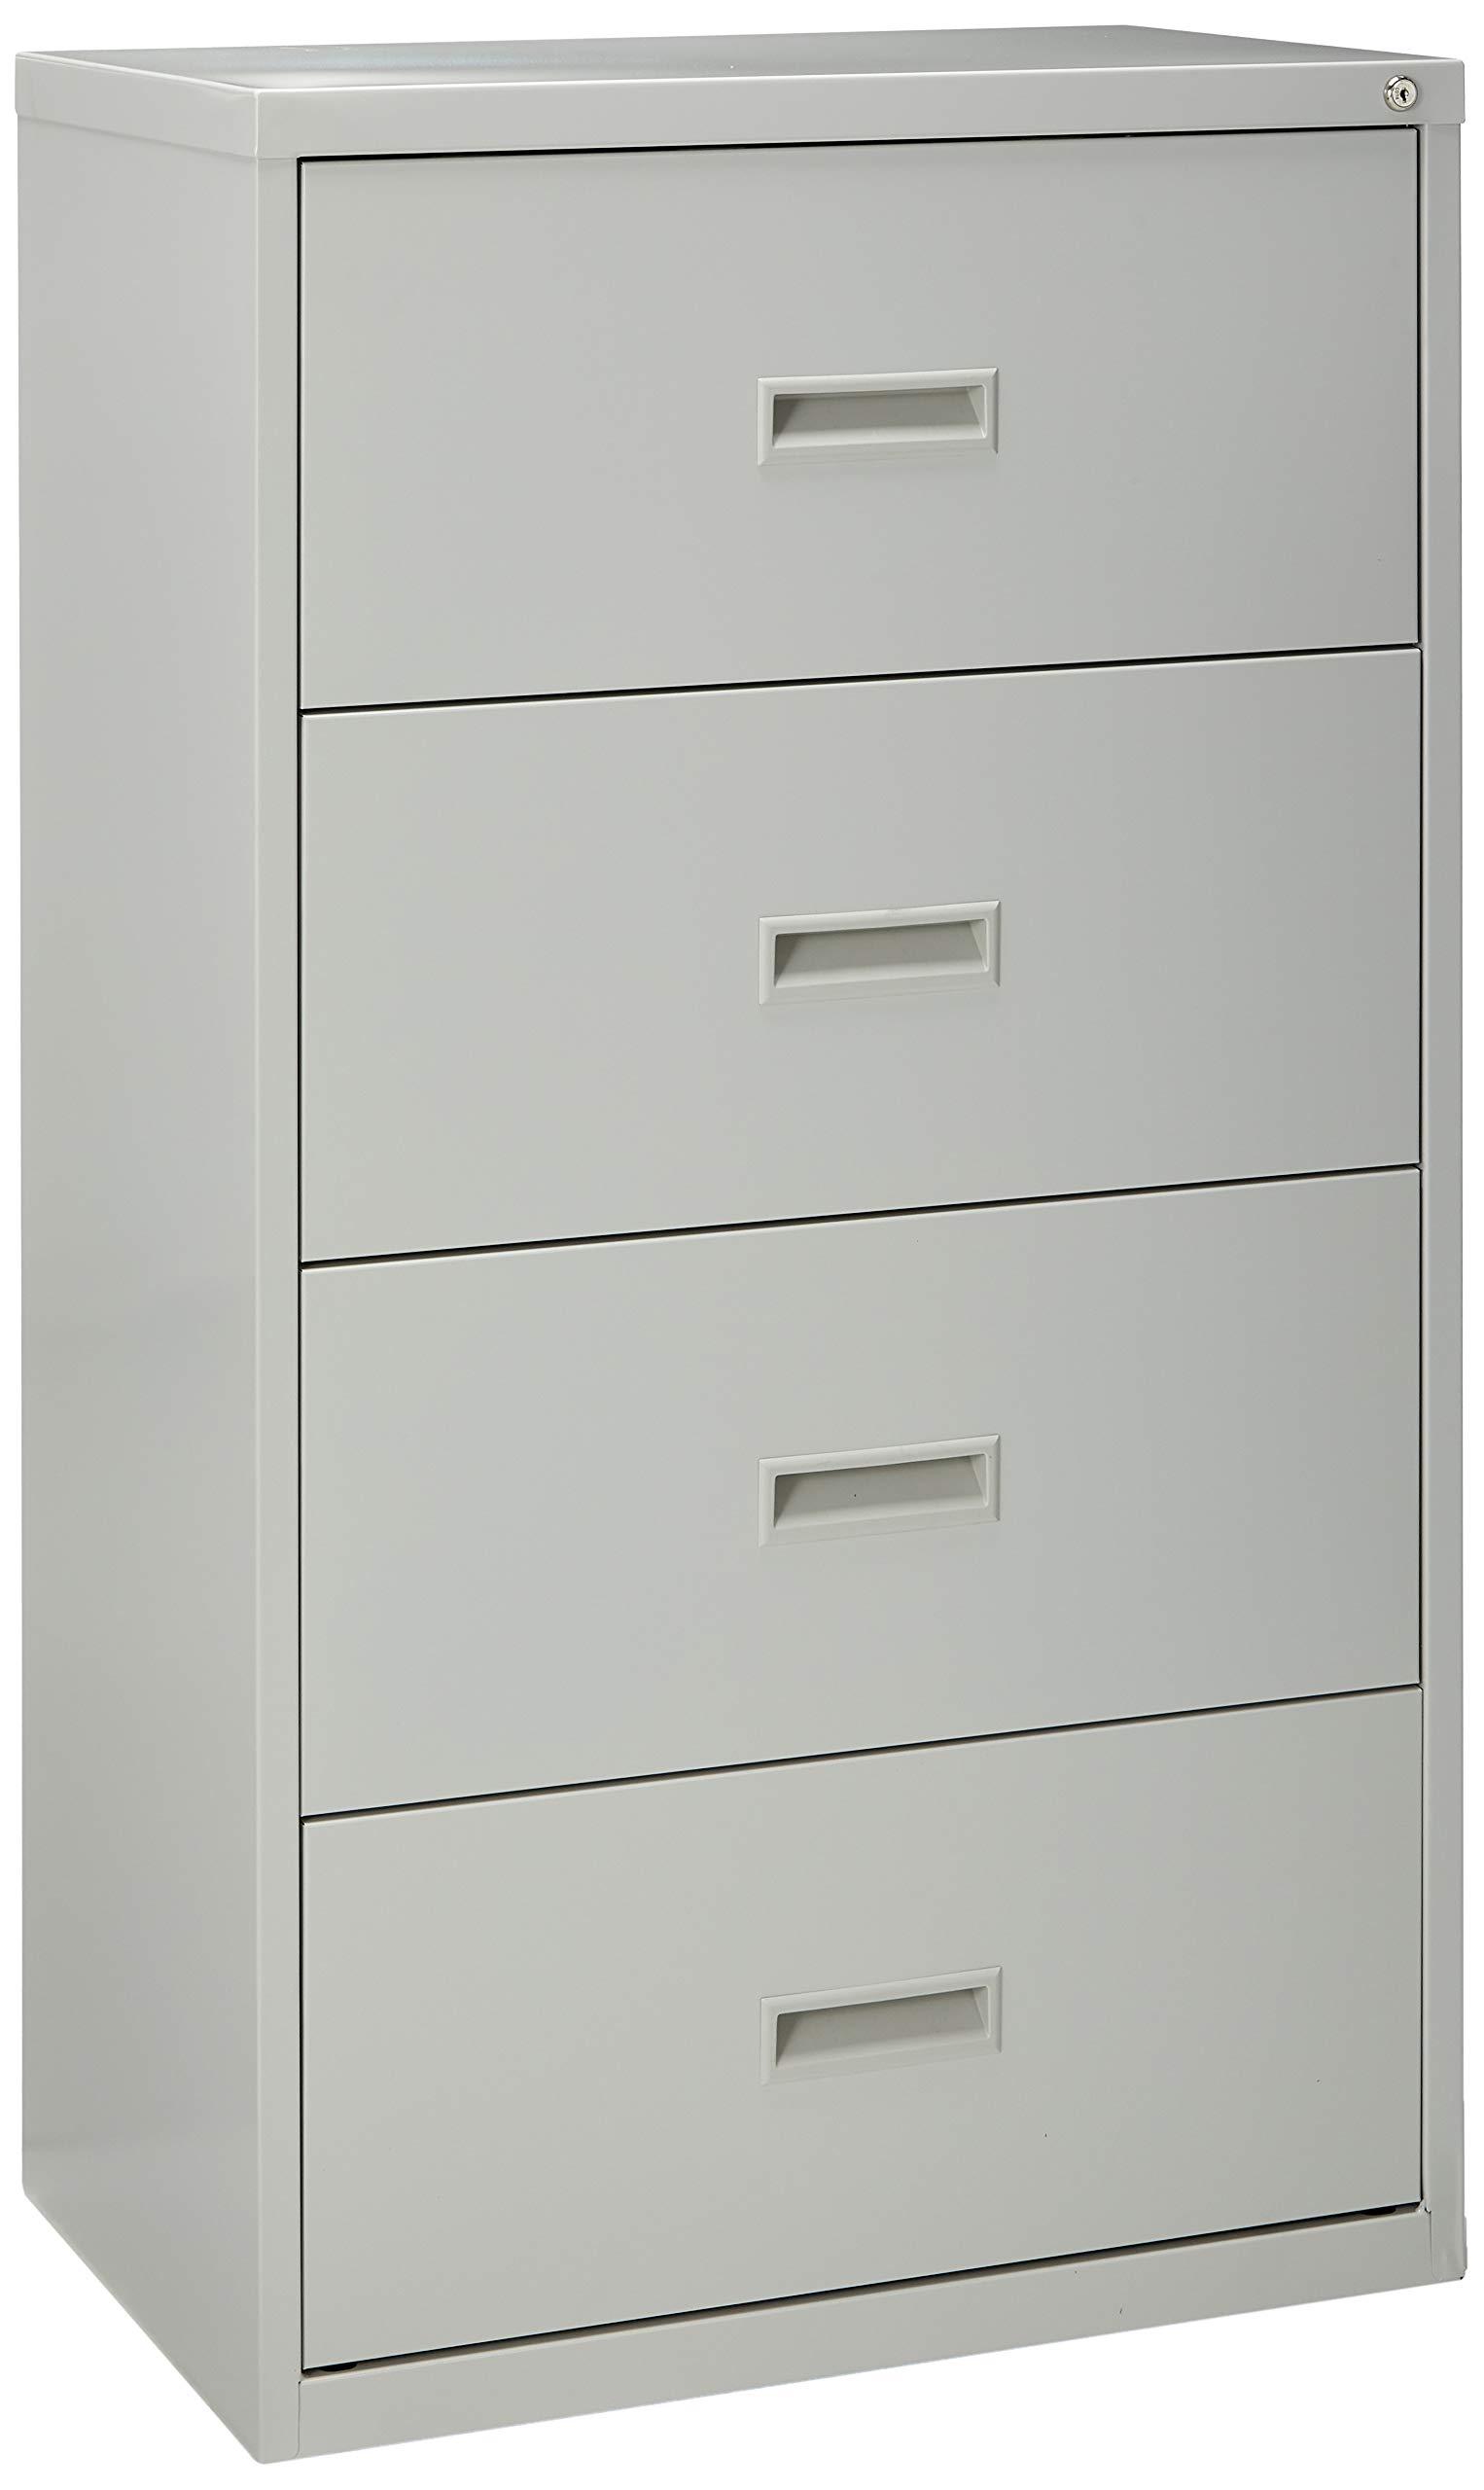 Lorell 4-Drawer Lateral File, 30 by 18-5/8 by 52-1/2-Inch Light Gray by Lorell